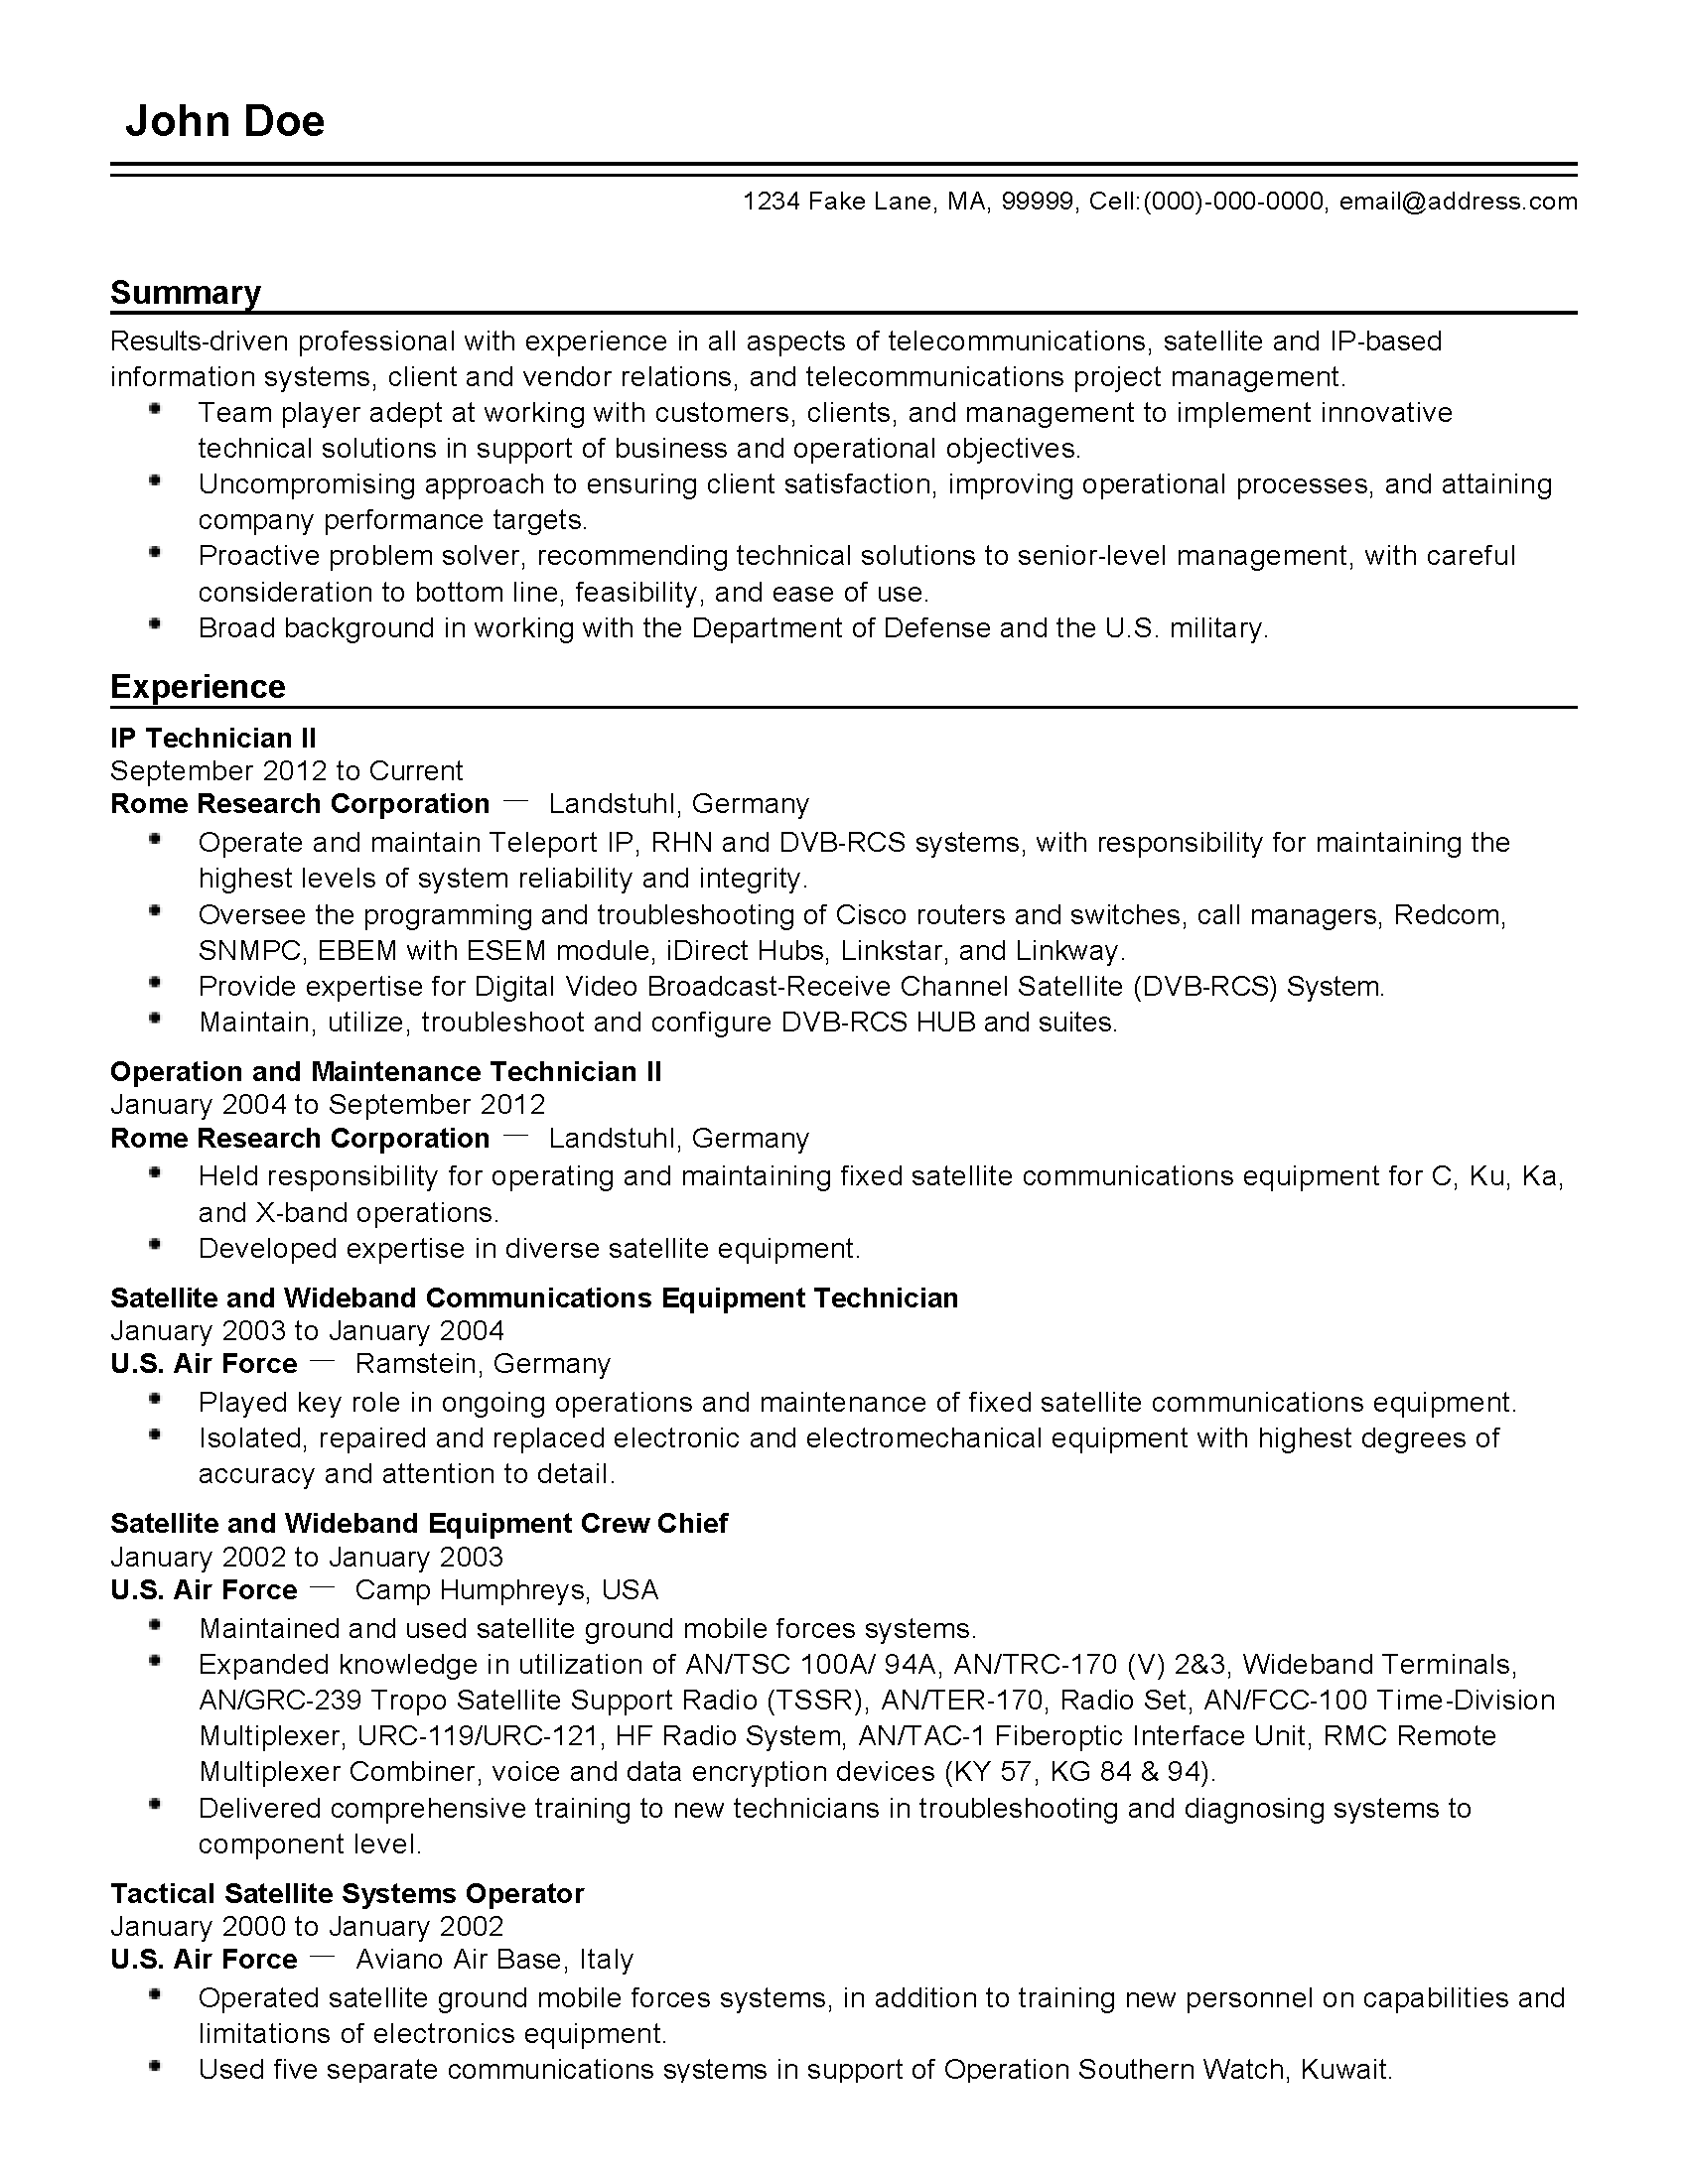 Resume Skills Team Player Professional Telecommunications It Professional Templates